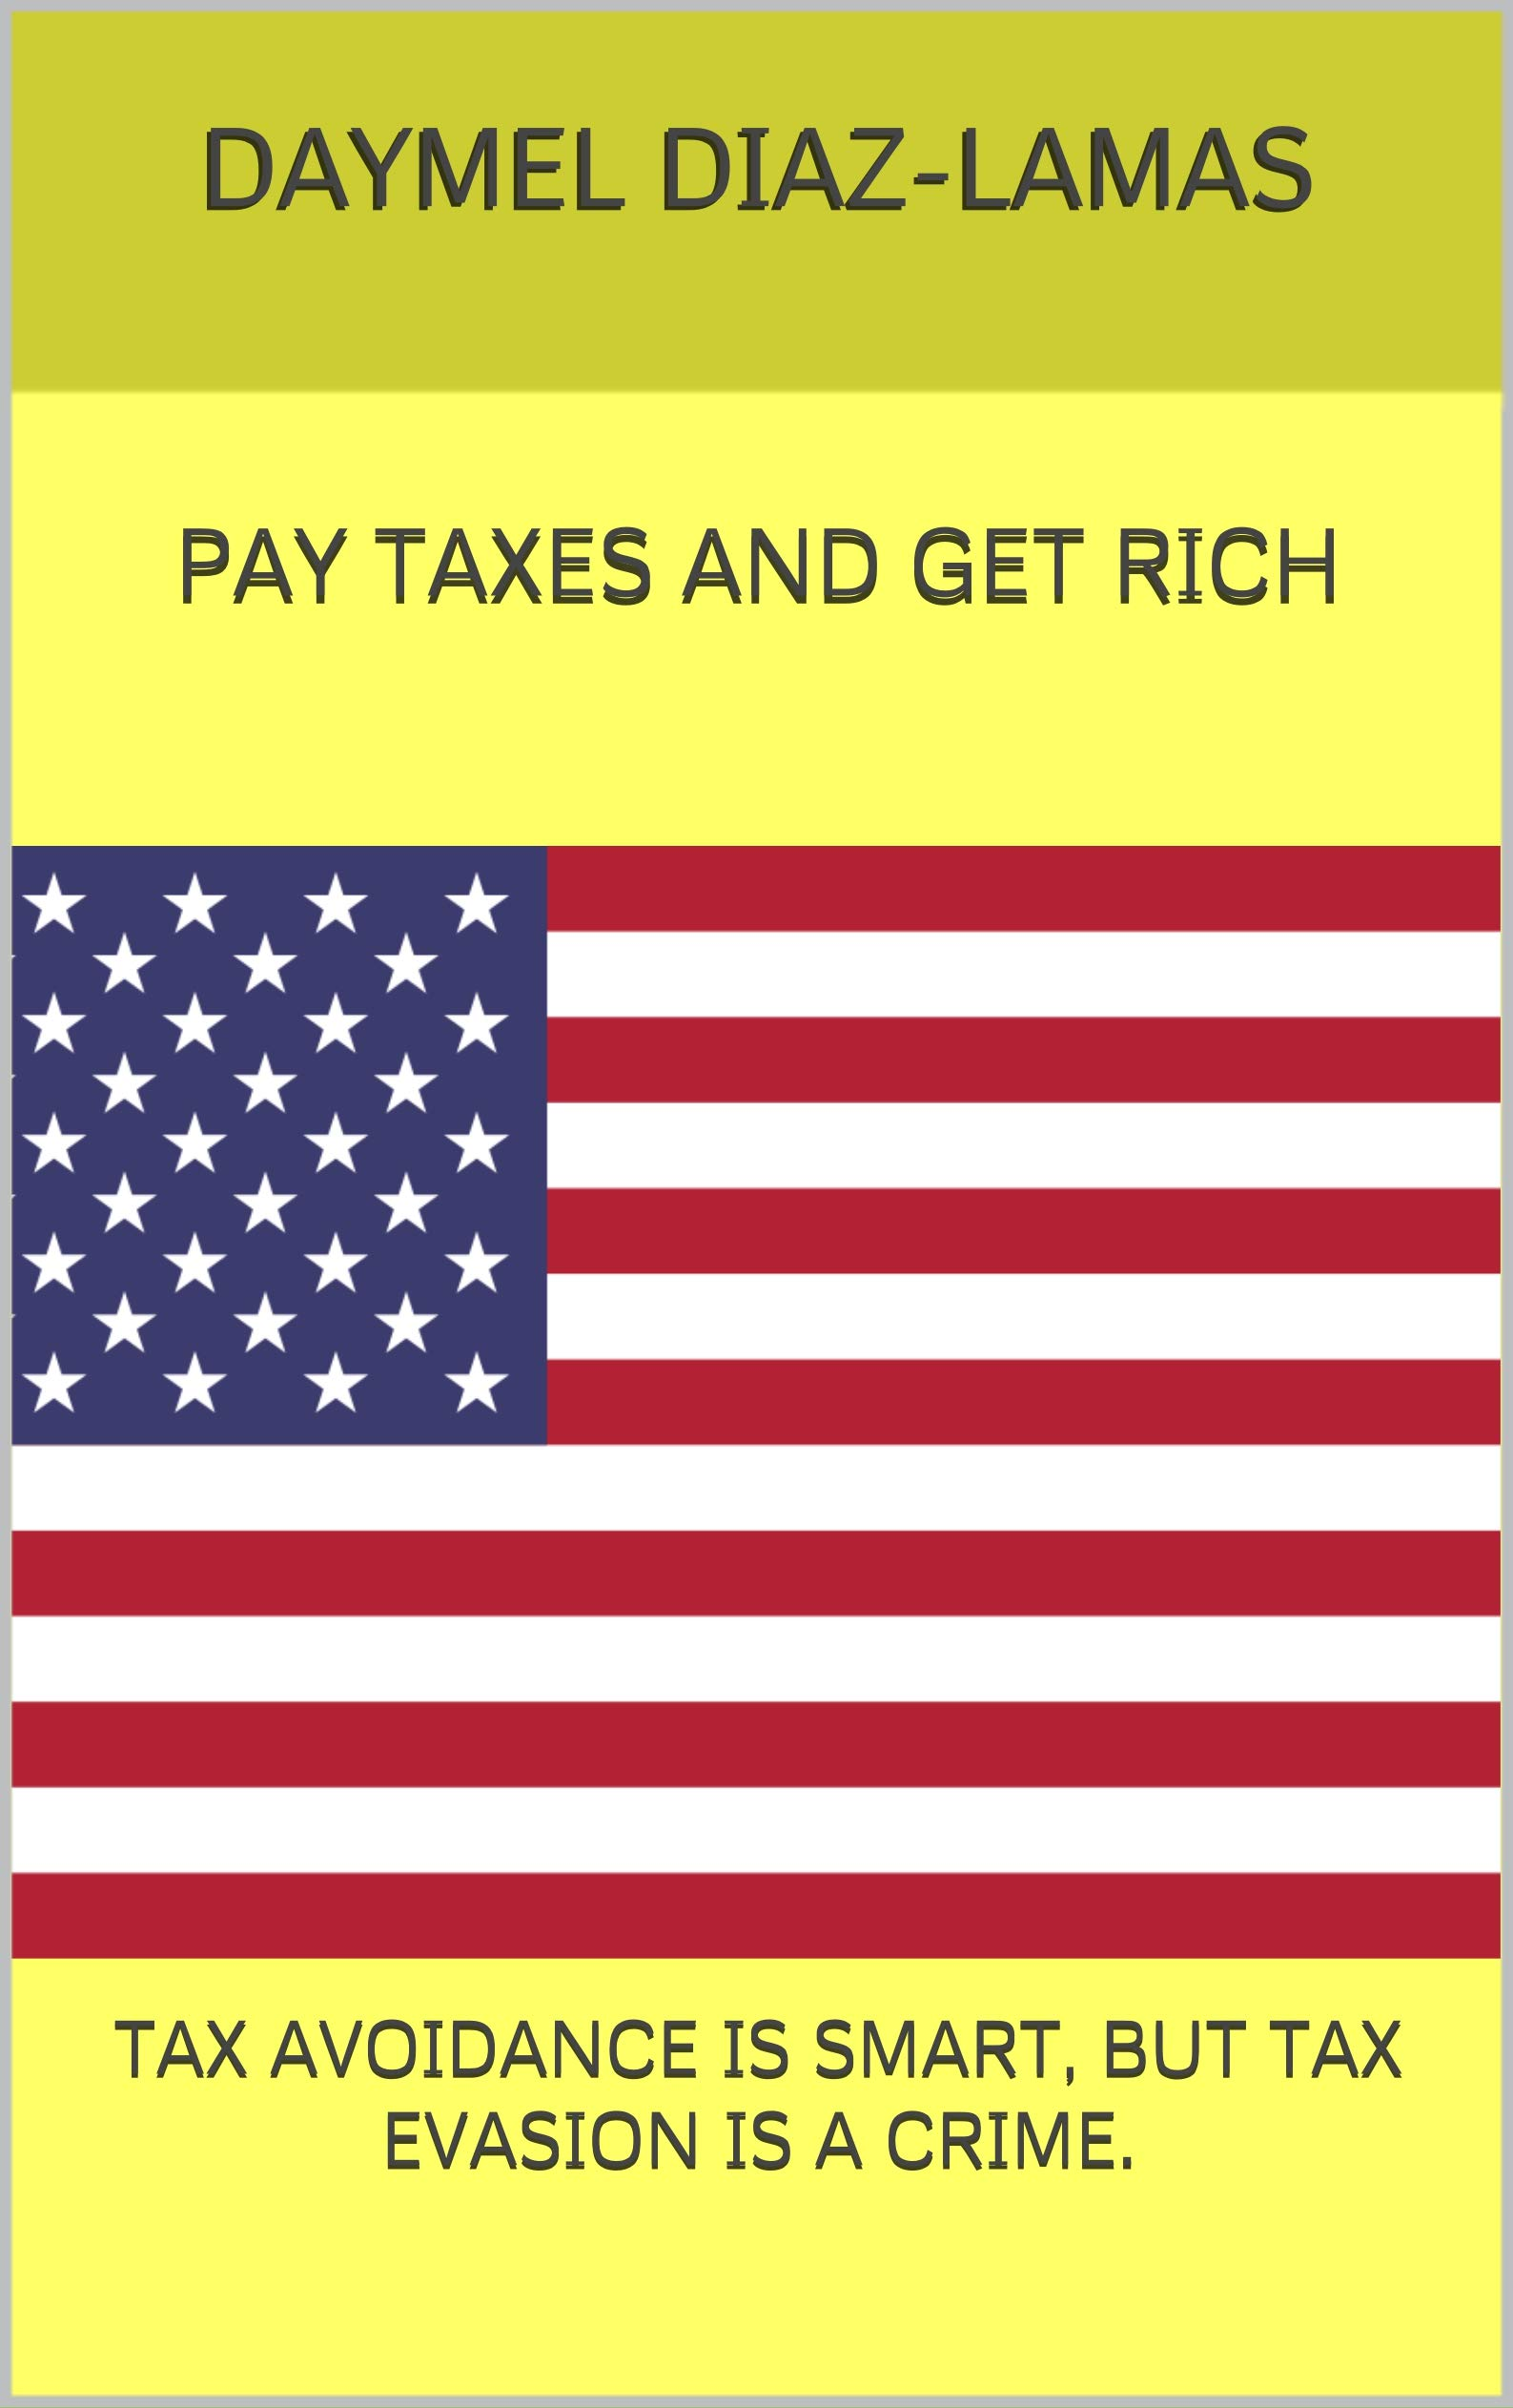 PAY TAXES AND GET RICH: TAX AVOIDANCE IS SMART, BUT TAX EVASION IS A CRIME.